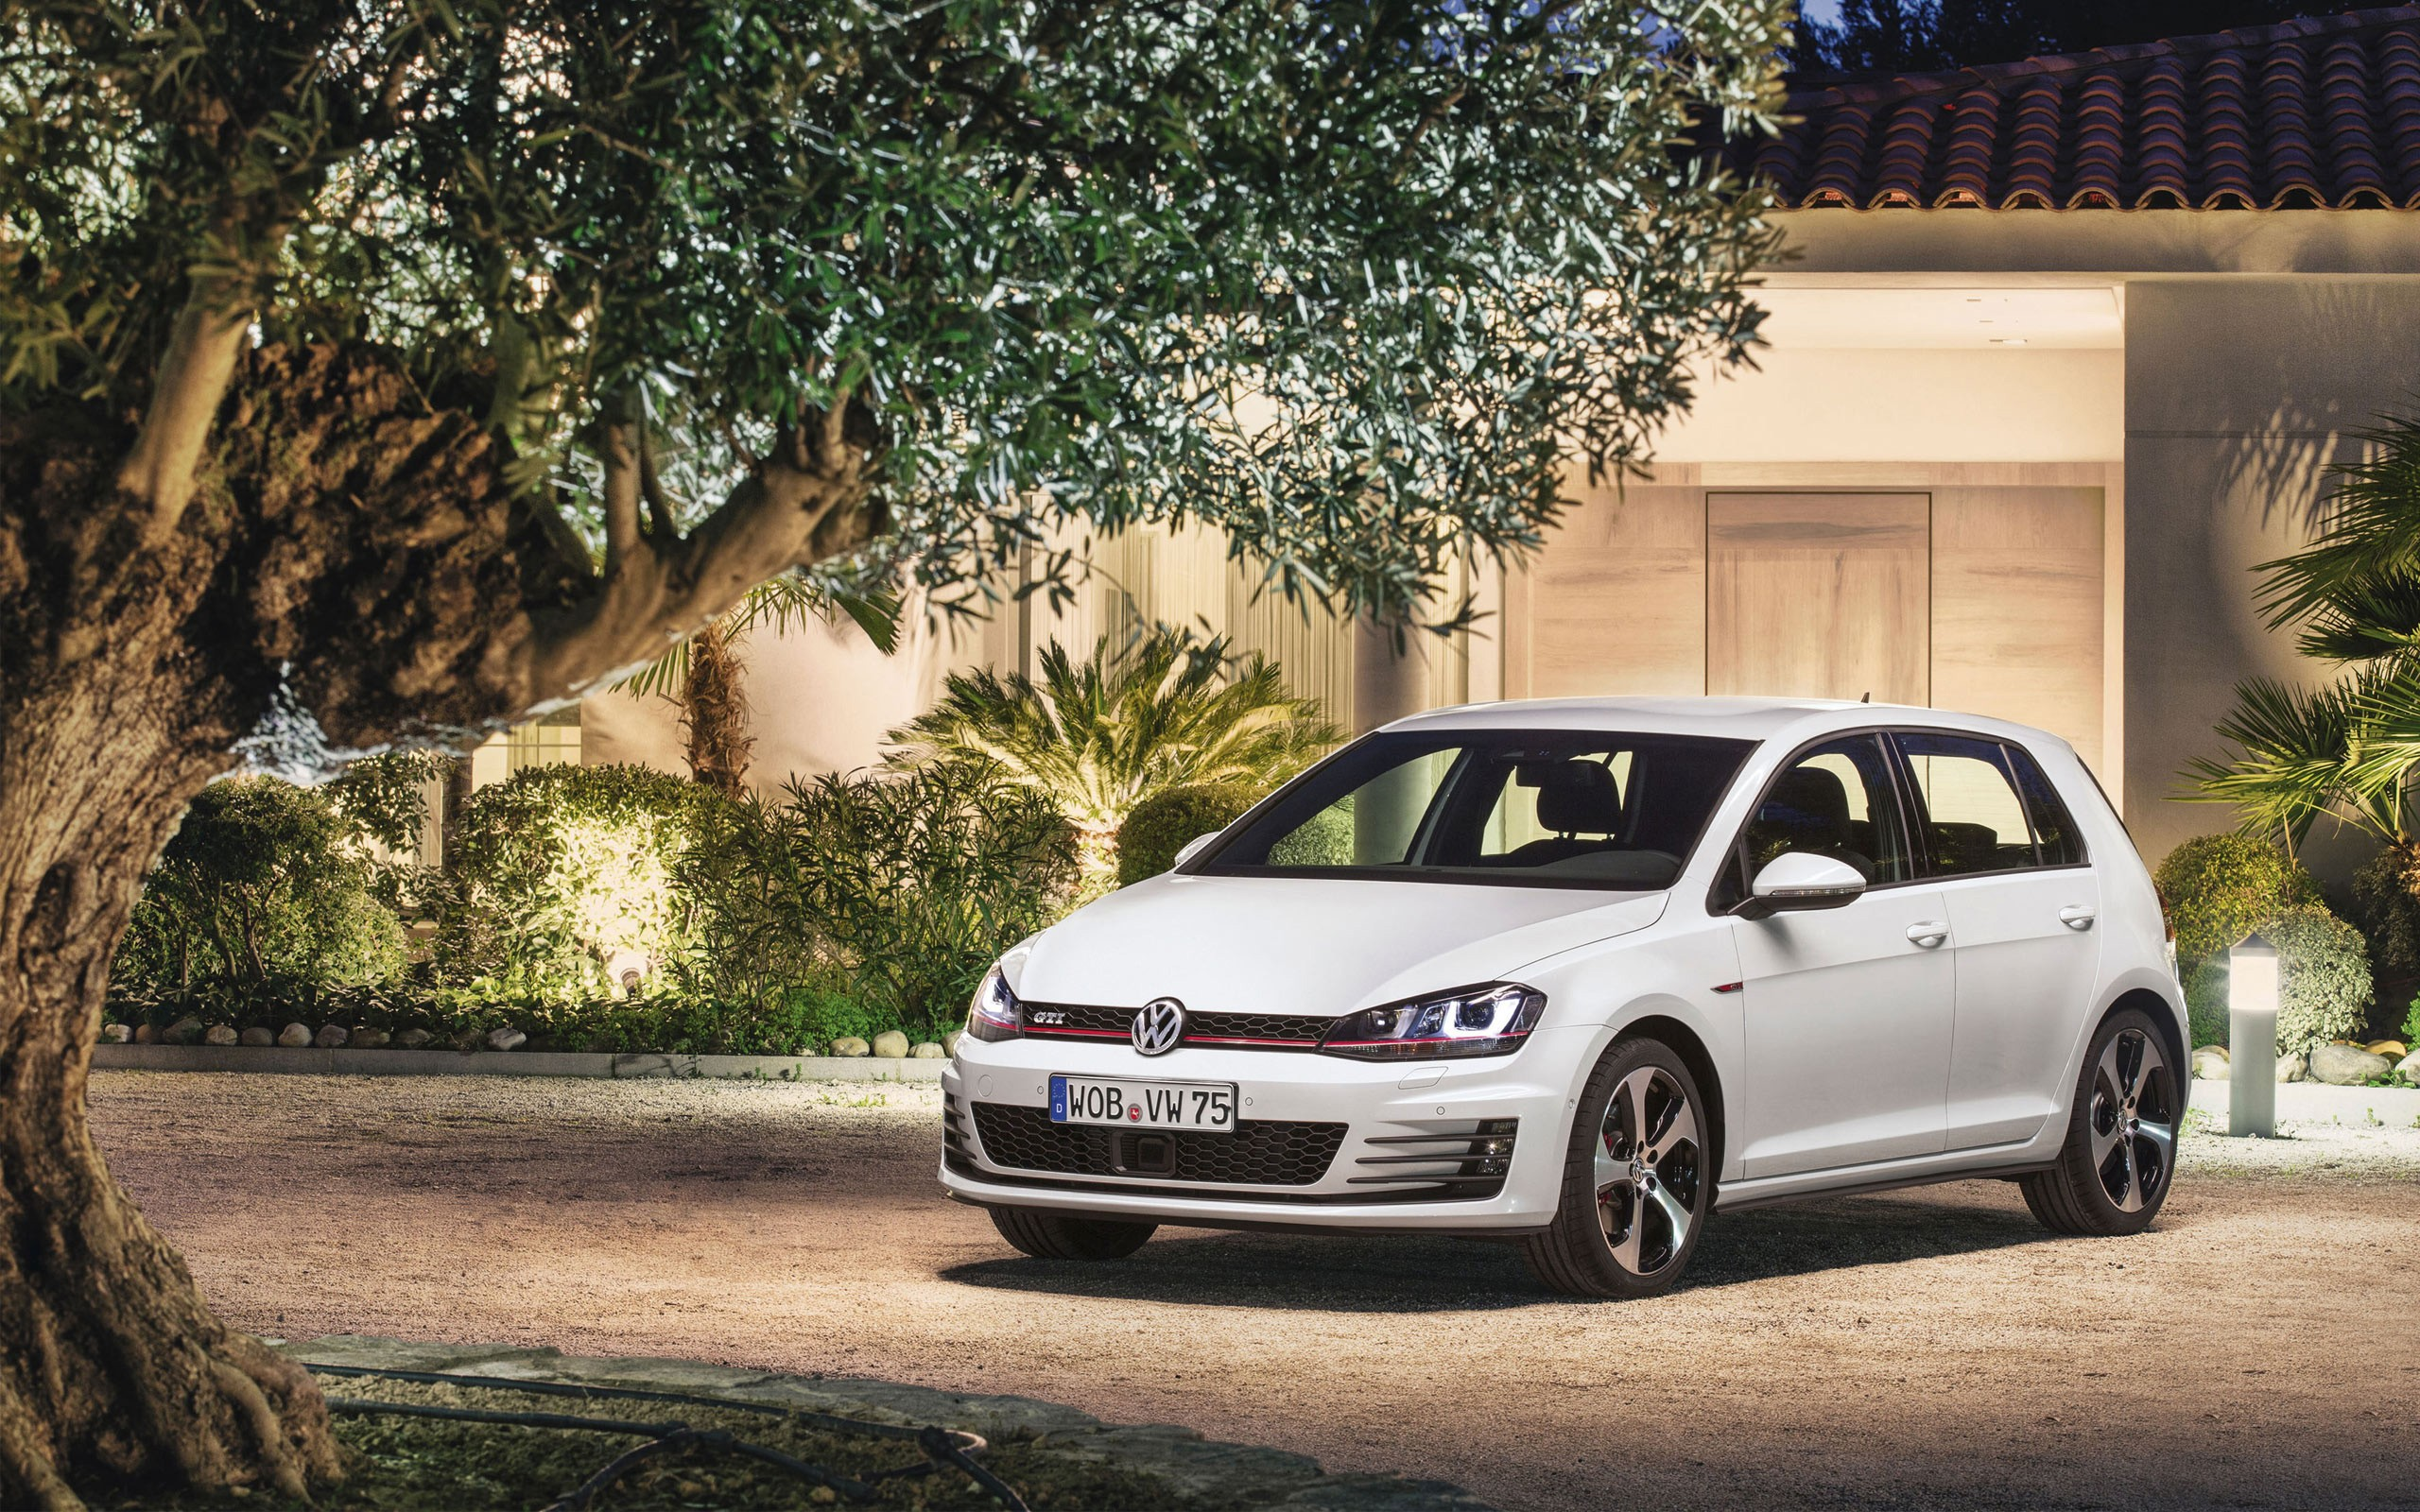 2014 Volkswagen Golf GTI Wallpaper